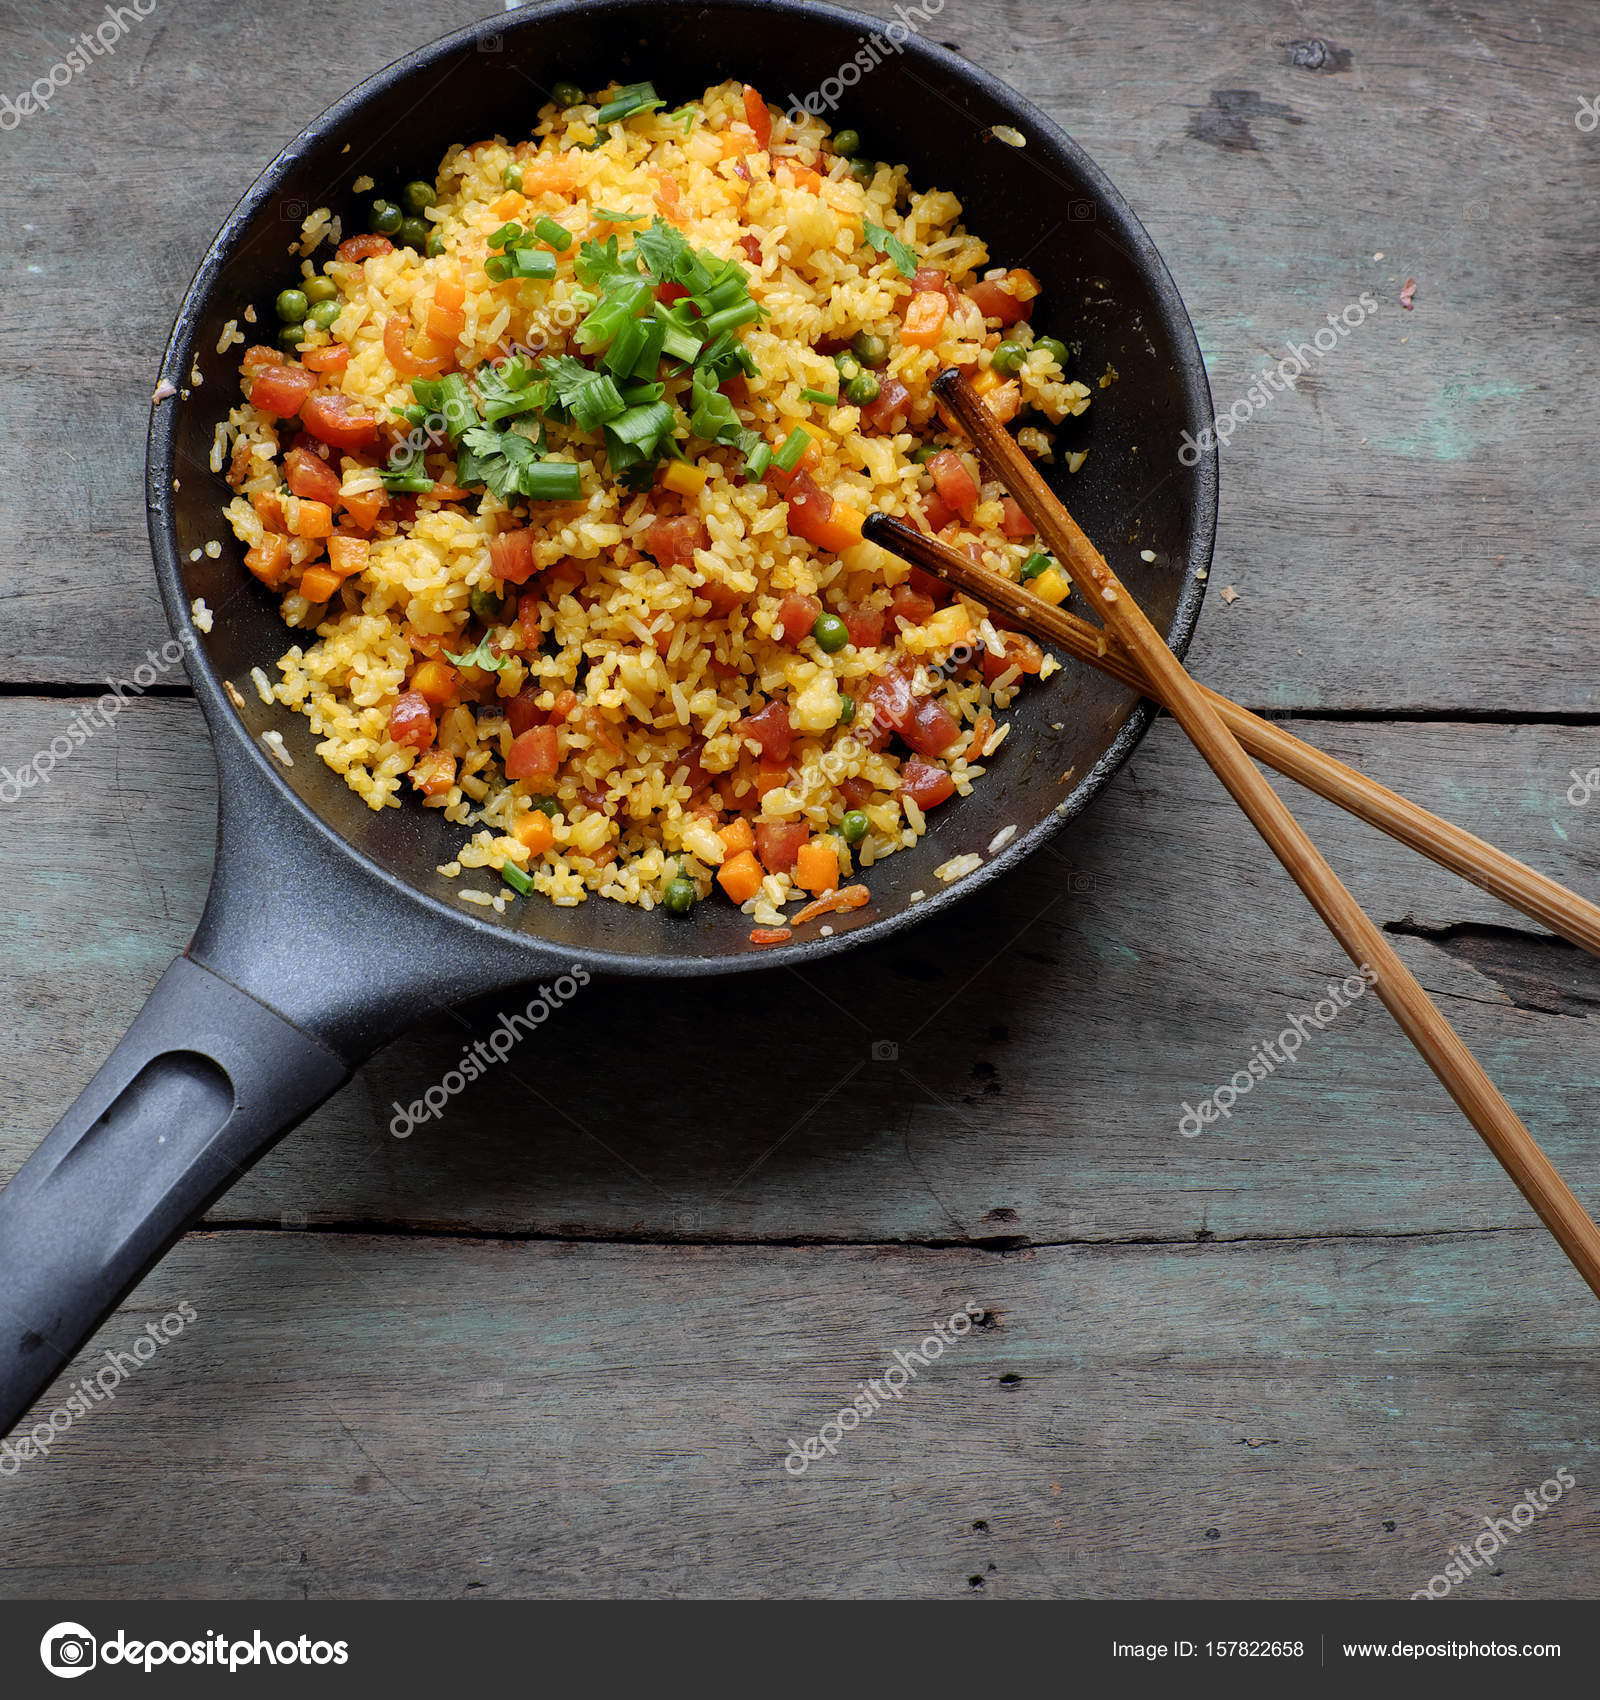 Vietnam food fried rice stock photo xuanhuongho 157822658 vietnam food fried rice make from rice egg sausage dried shrimp bean cucumber tomato carrot and scallion high view of dishl on wooden background ccuart Images